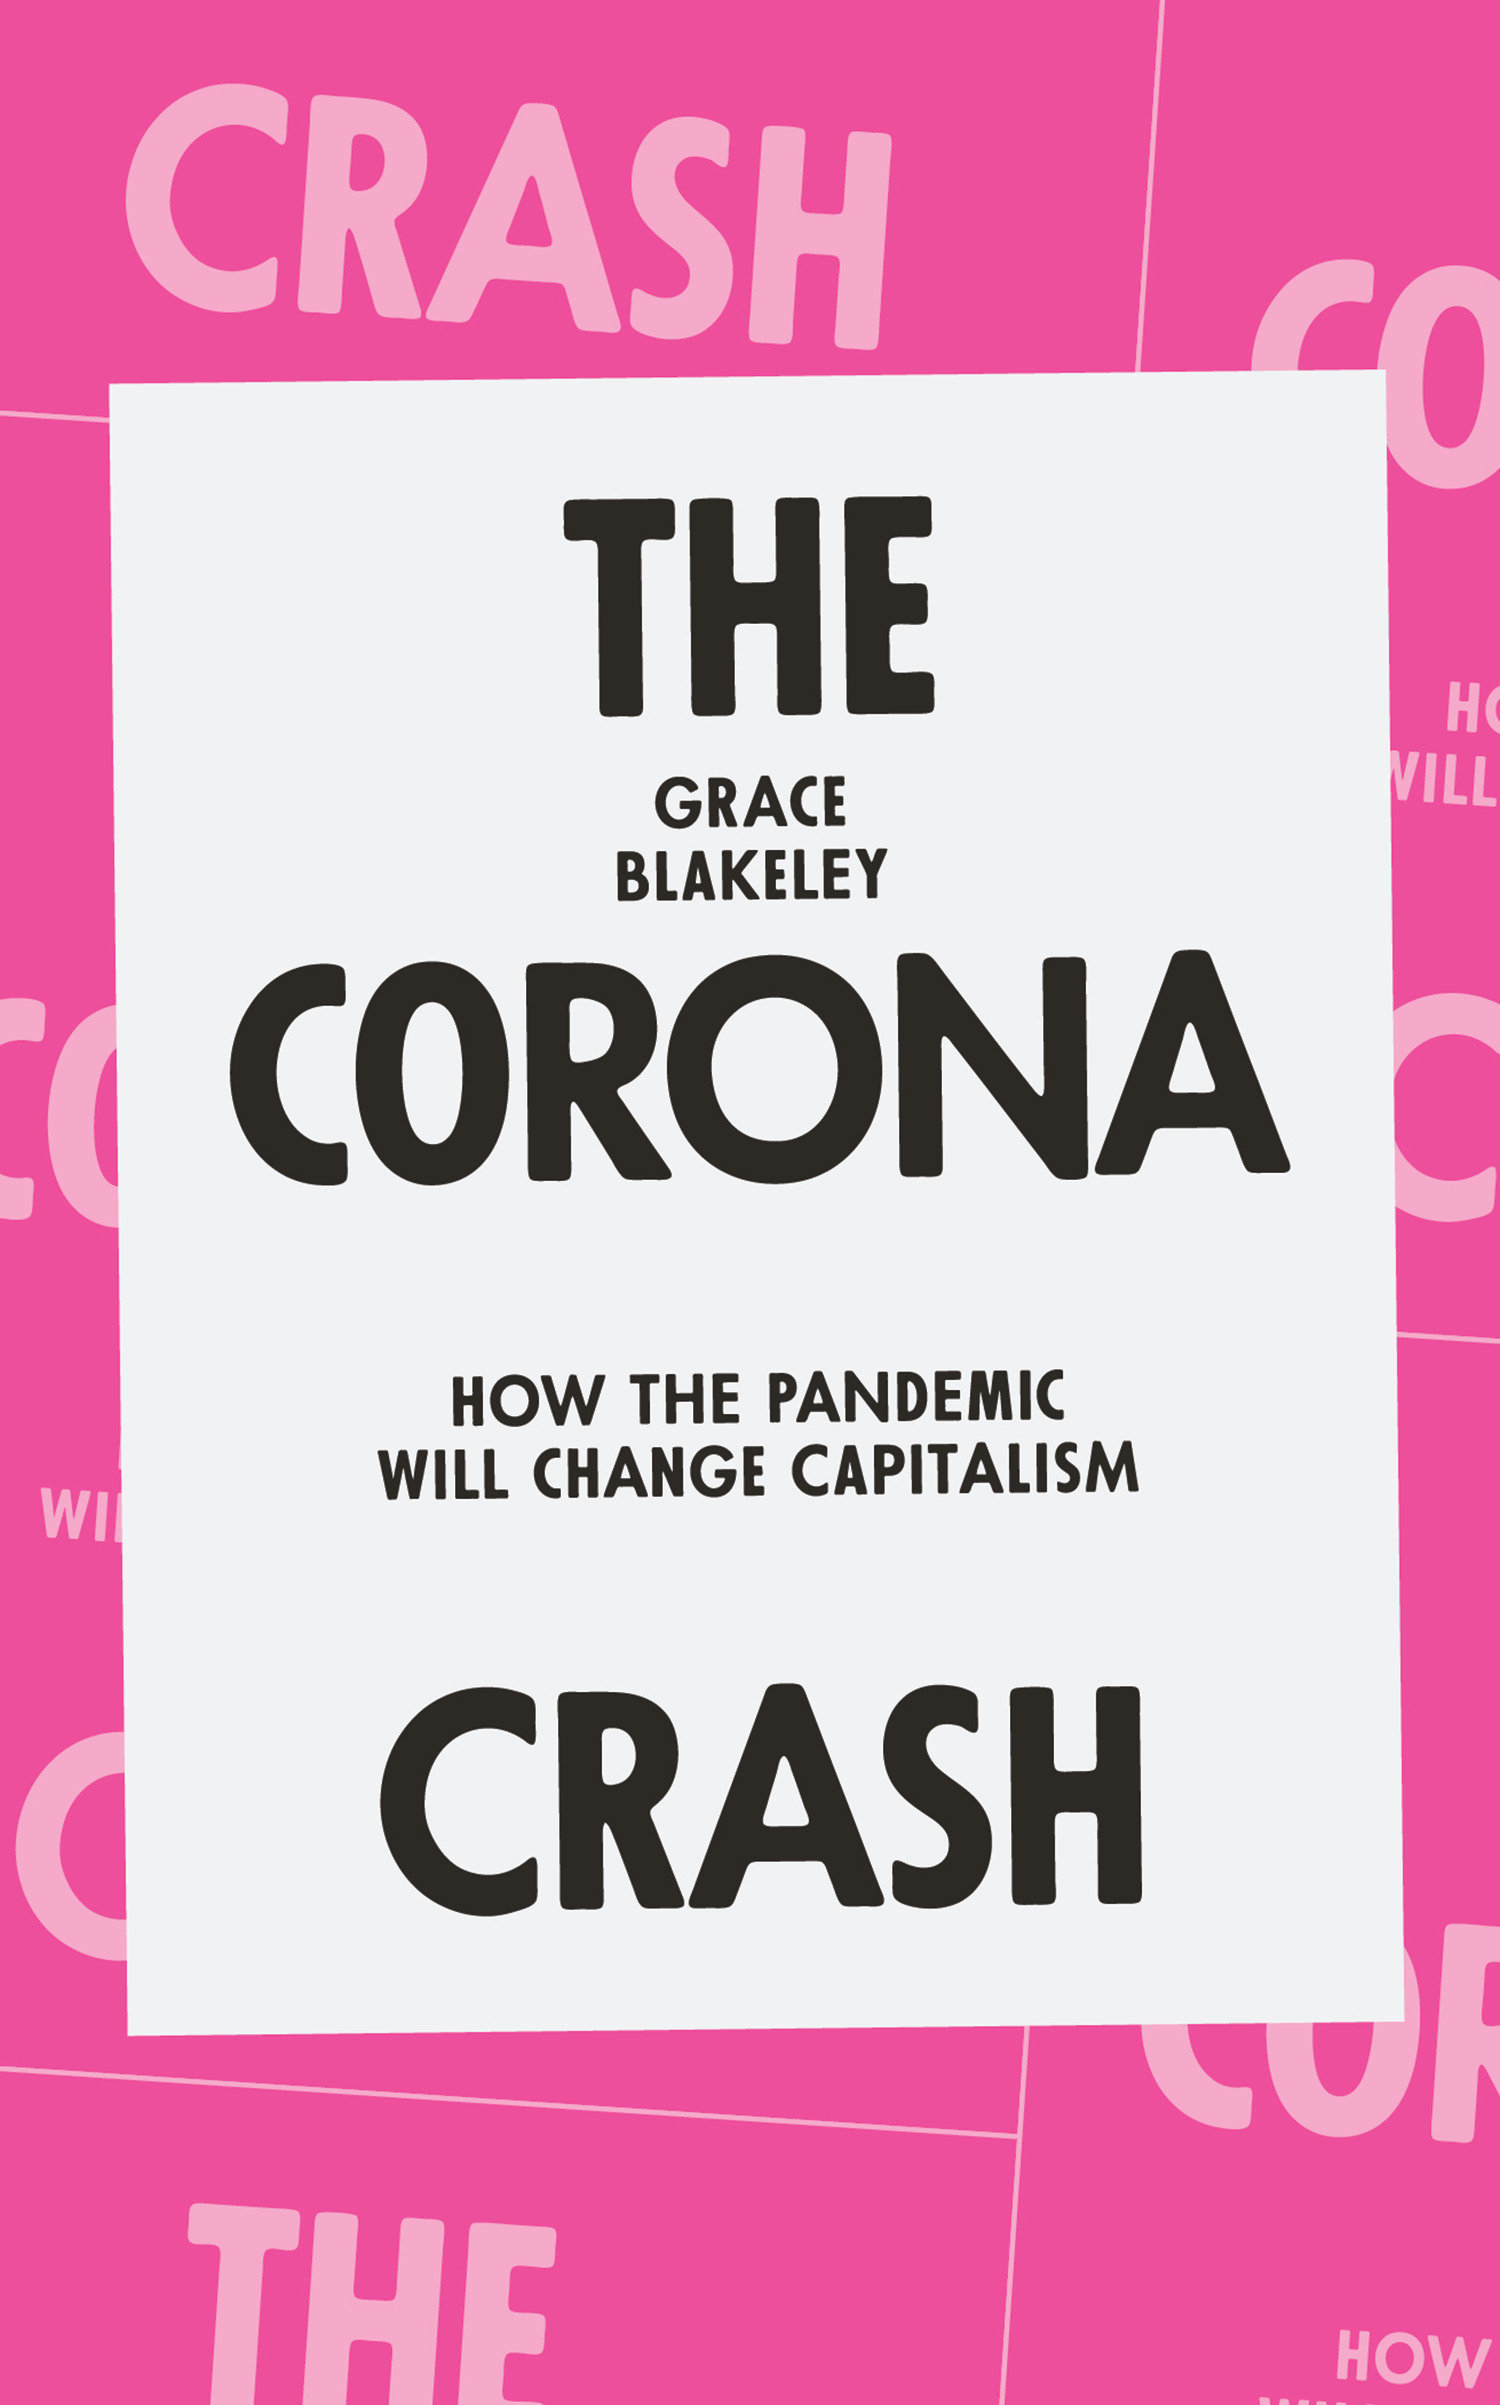 The Corona Crash How the Pandemic Will Change Capitalism